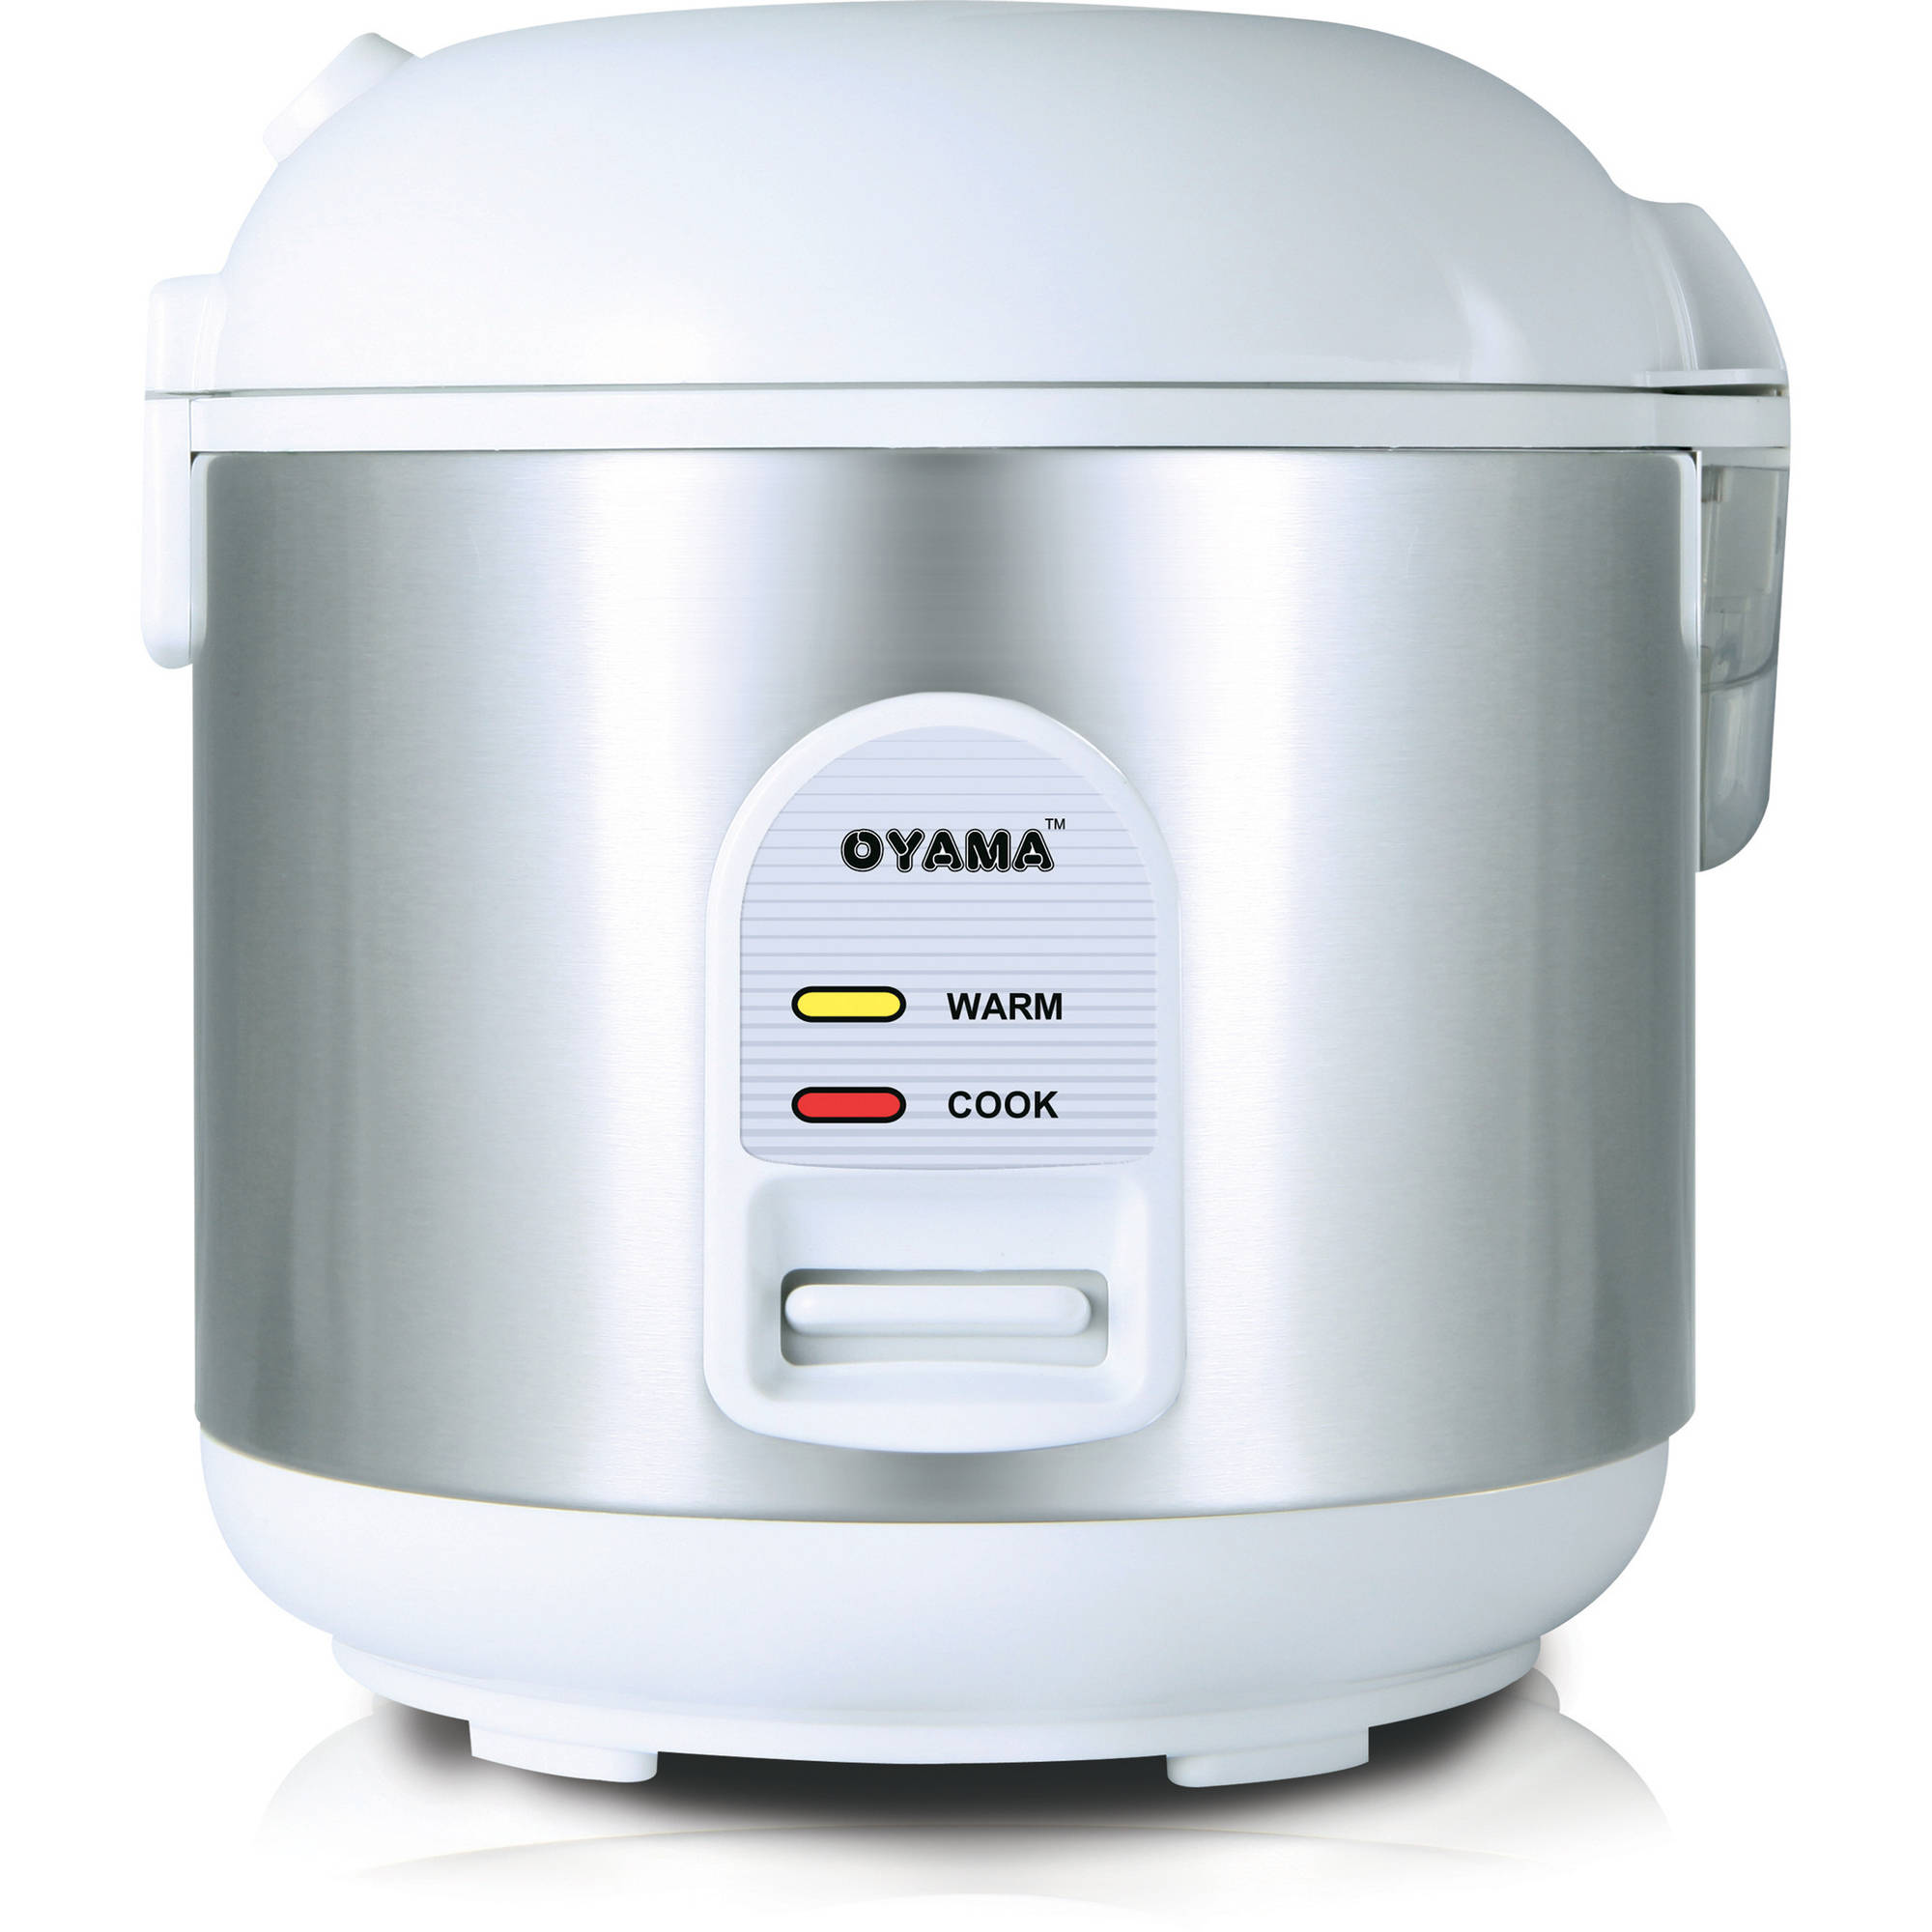 Oyama 5-Cup All Stainless-Steel Rice Cooker/Steamer/Warmer, White